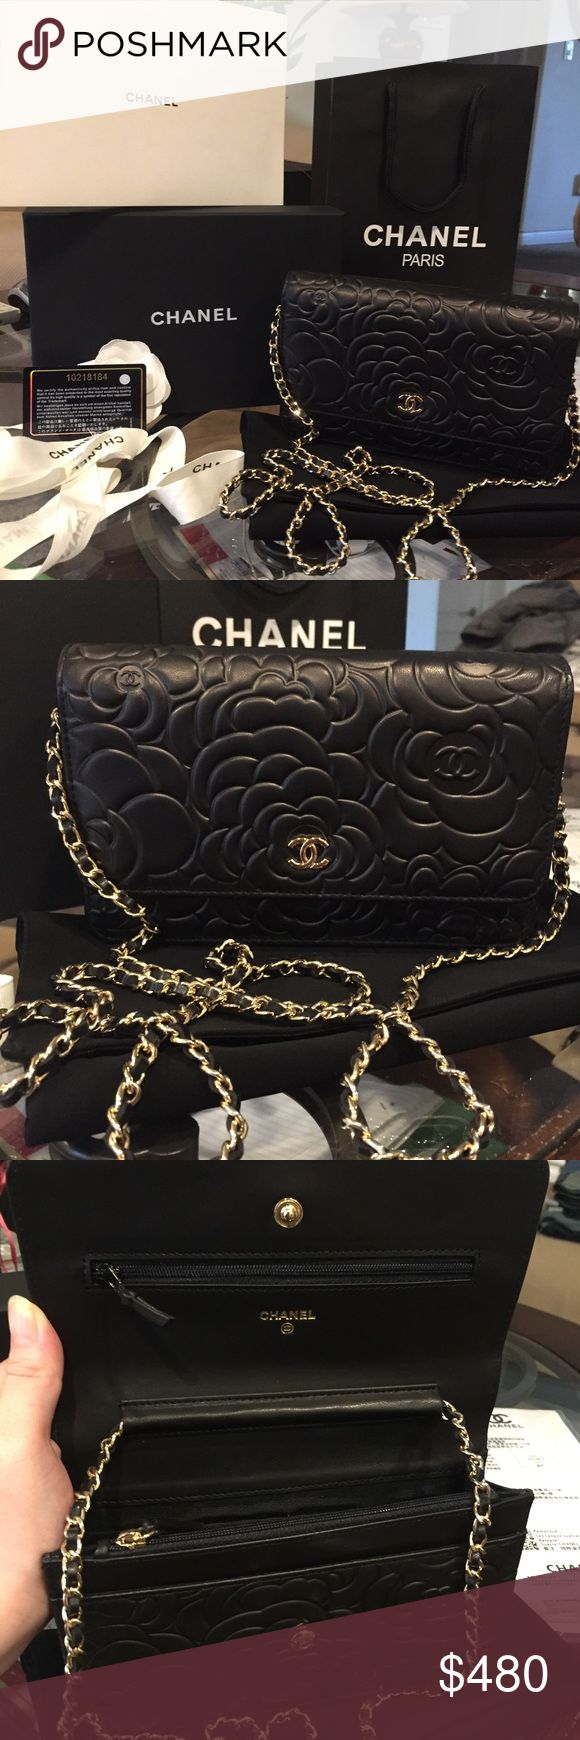 CHANEL WOC camelia Pre order only comes with everything brandnew Bags